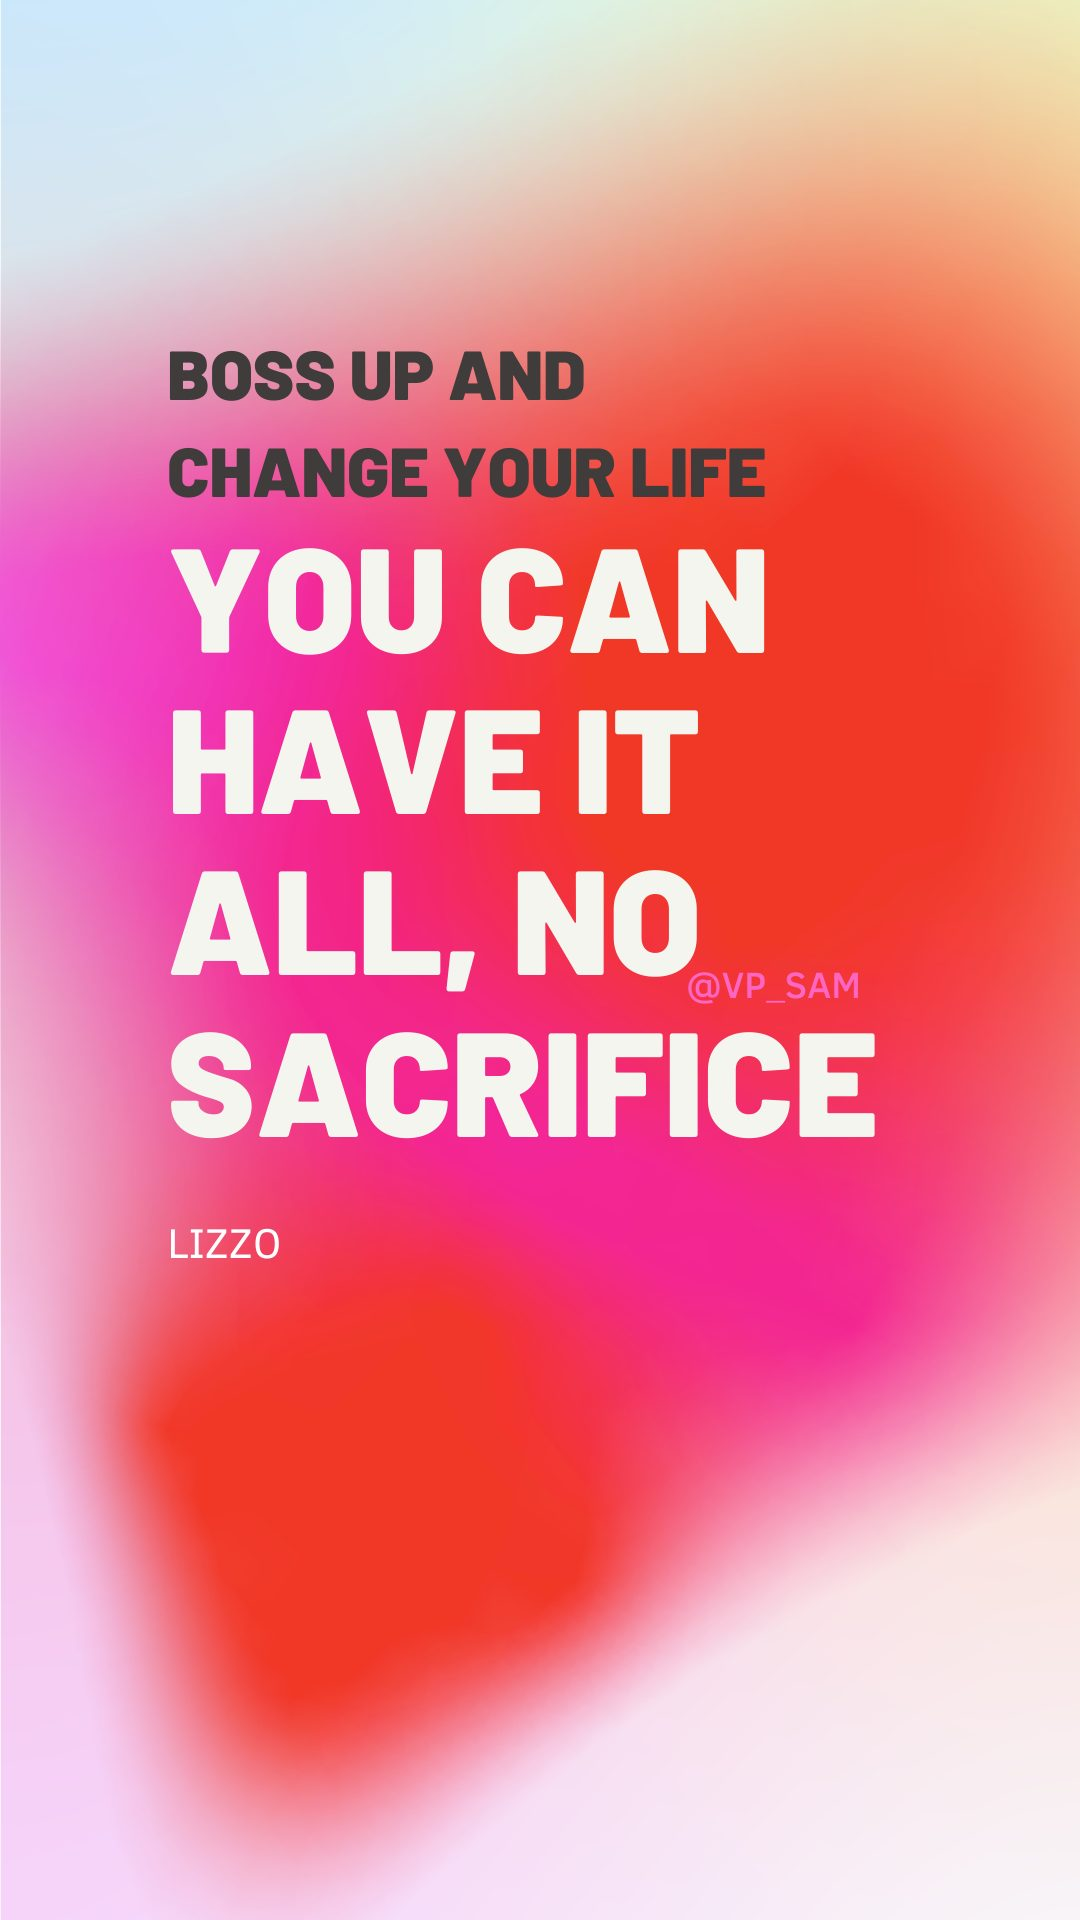 lizzo power confidence boss up life quote lyrics wallpaper